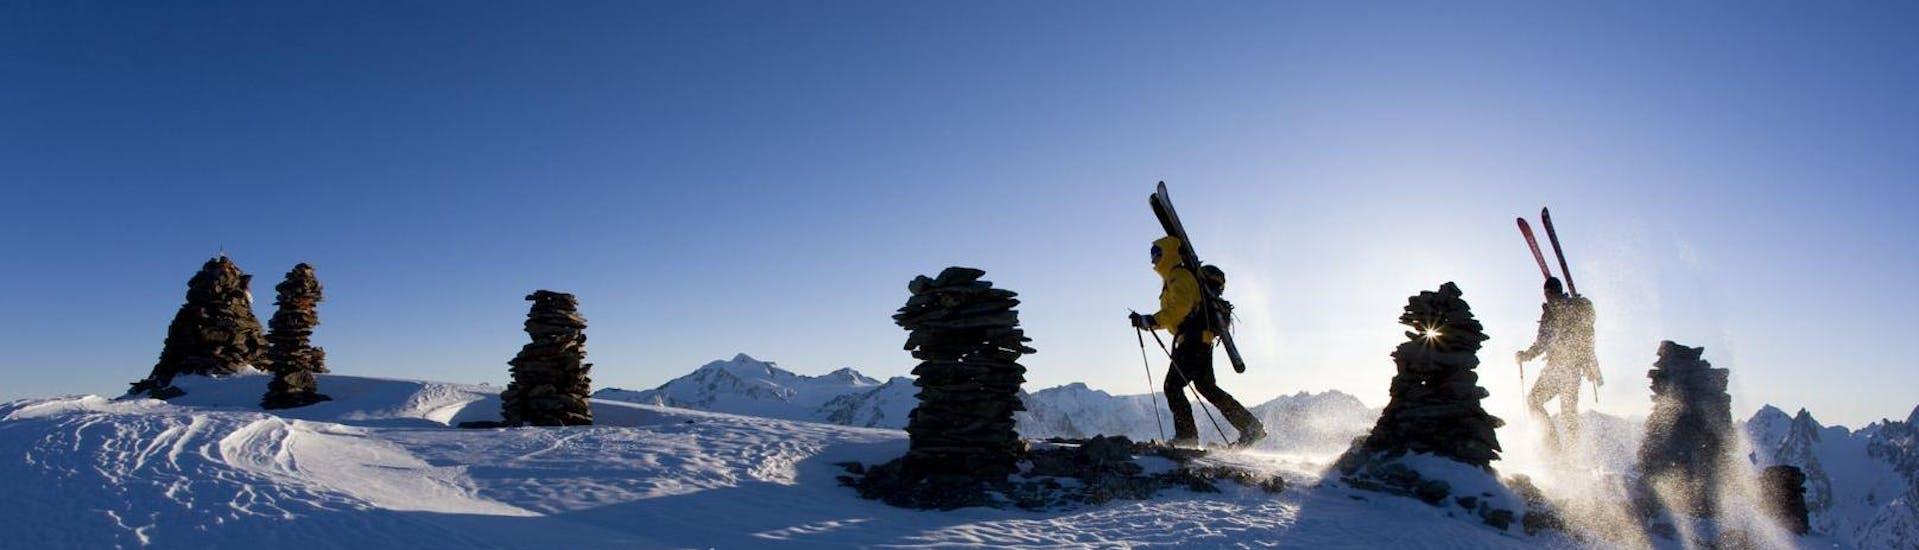 Two participants of a ski tour with Alpinschule Sölden are making their way to the mountain top in the ski resort of Sölden.